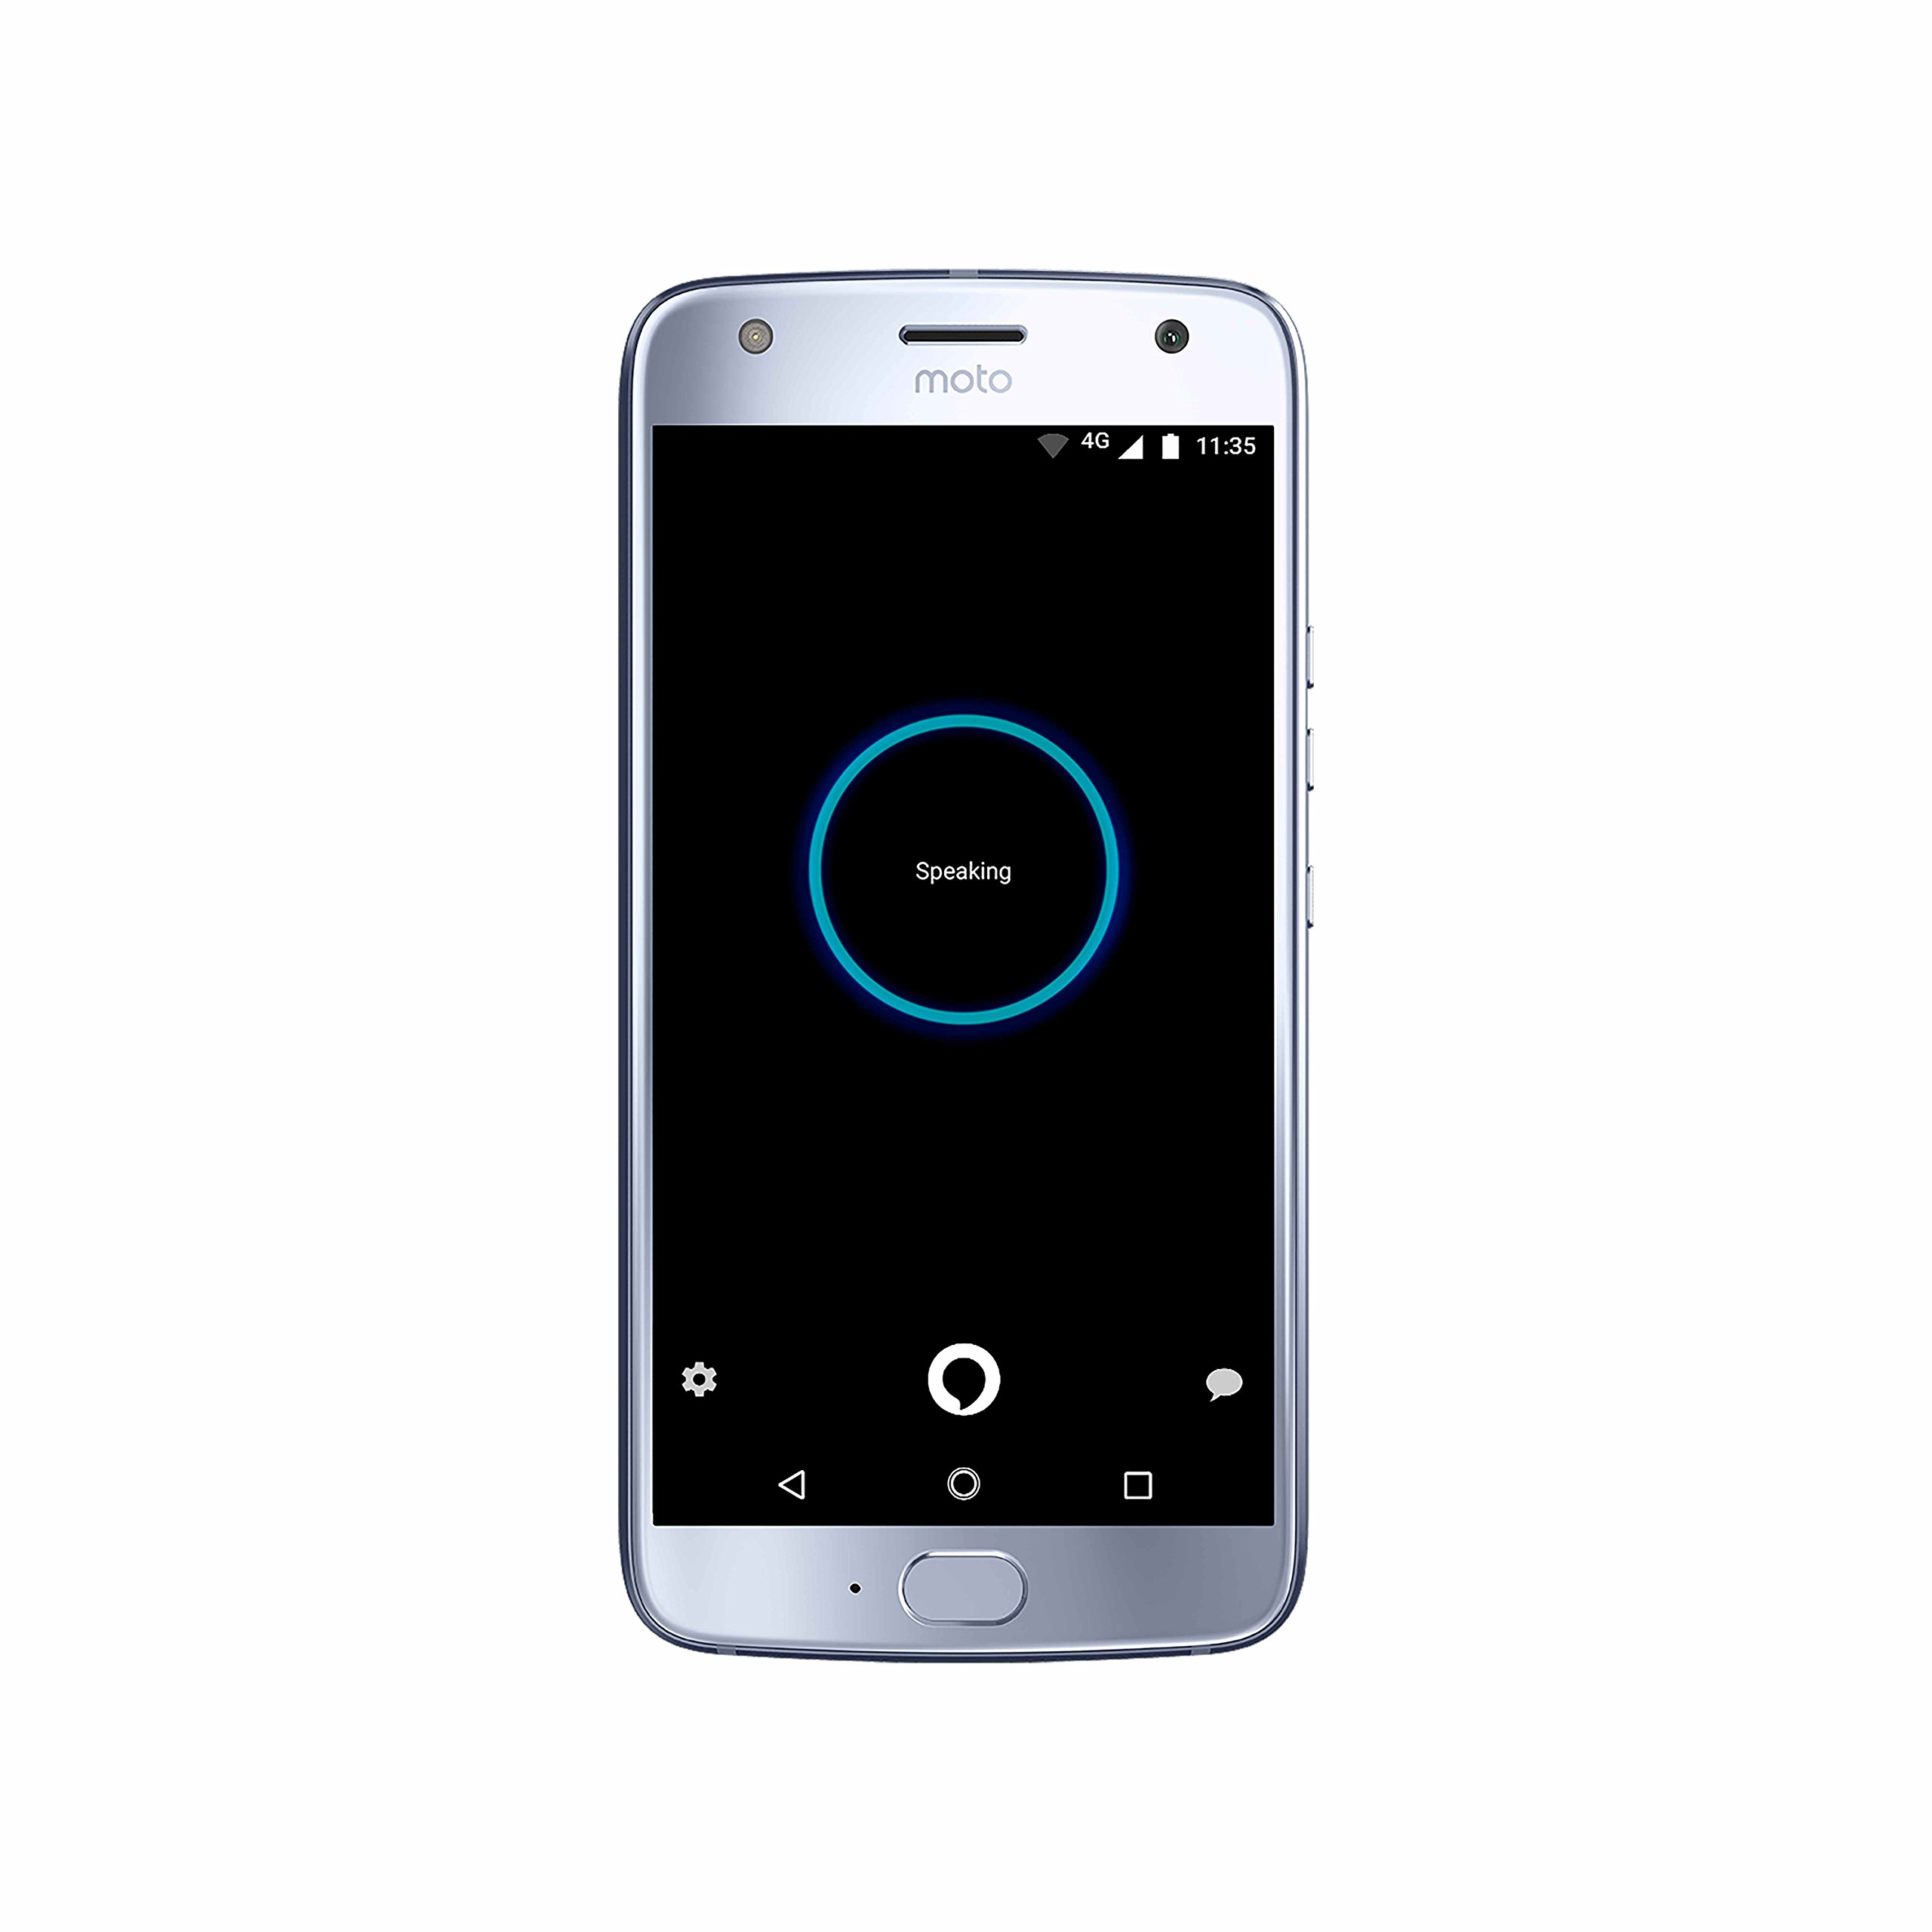 Moto X (4th Generation) - with hands-free Amazon Alexa – 32 GB - Unlocked – Sterling Blue - Prime Exclusive